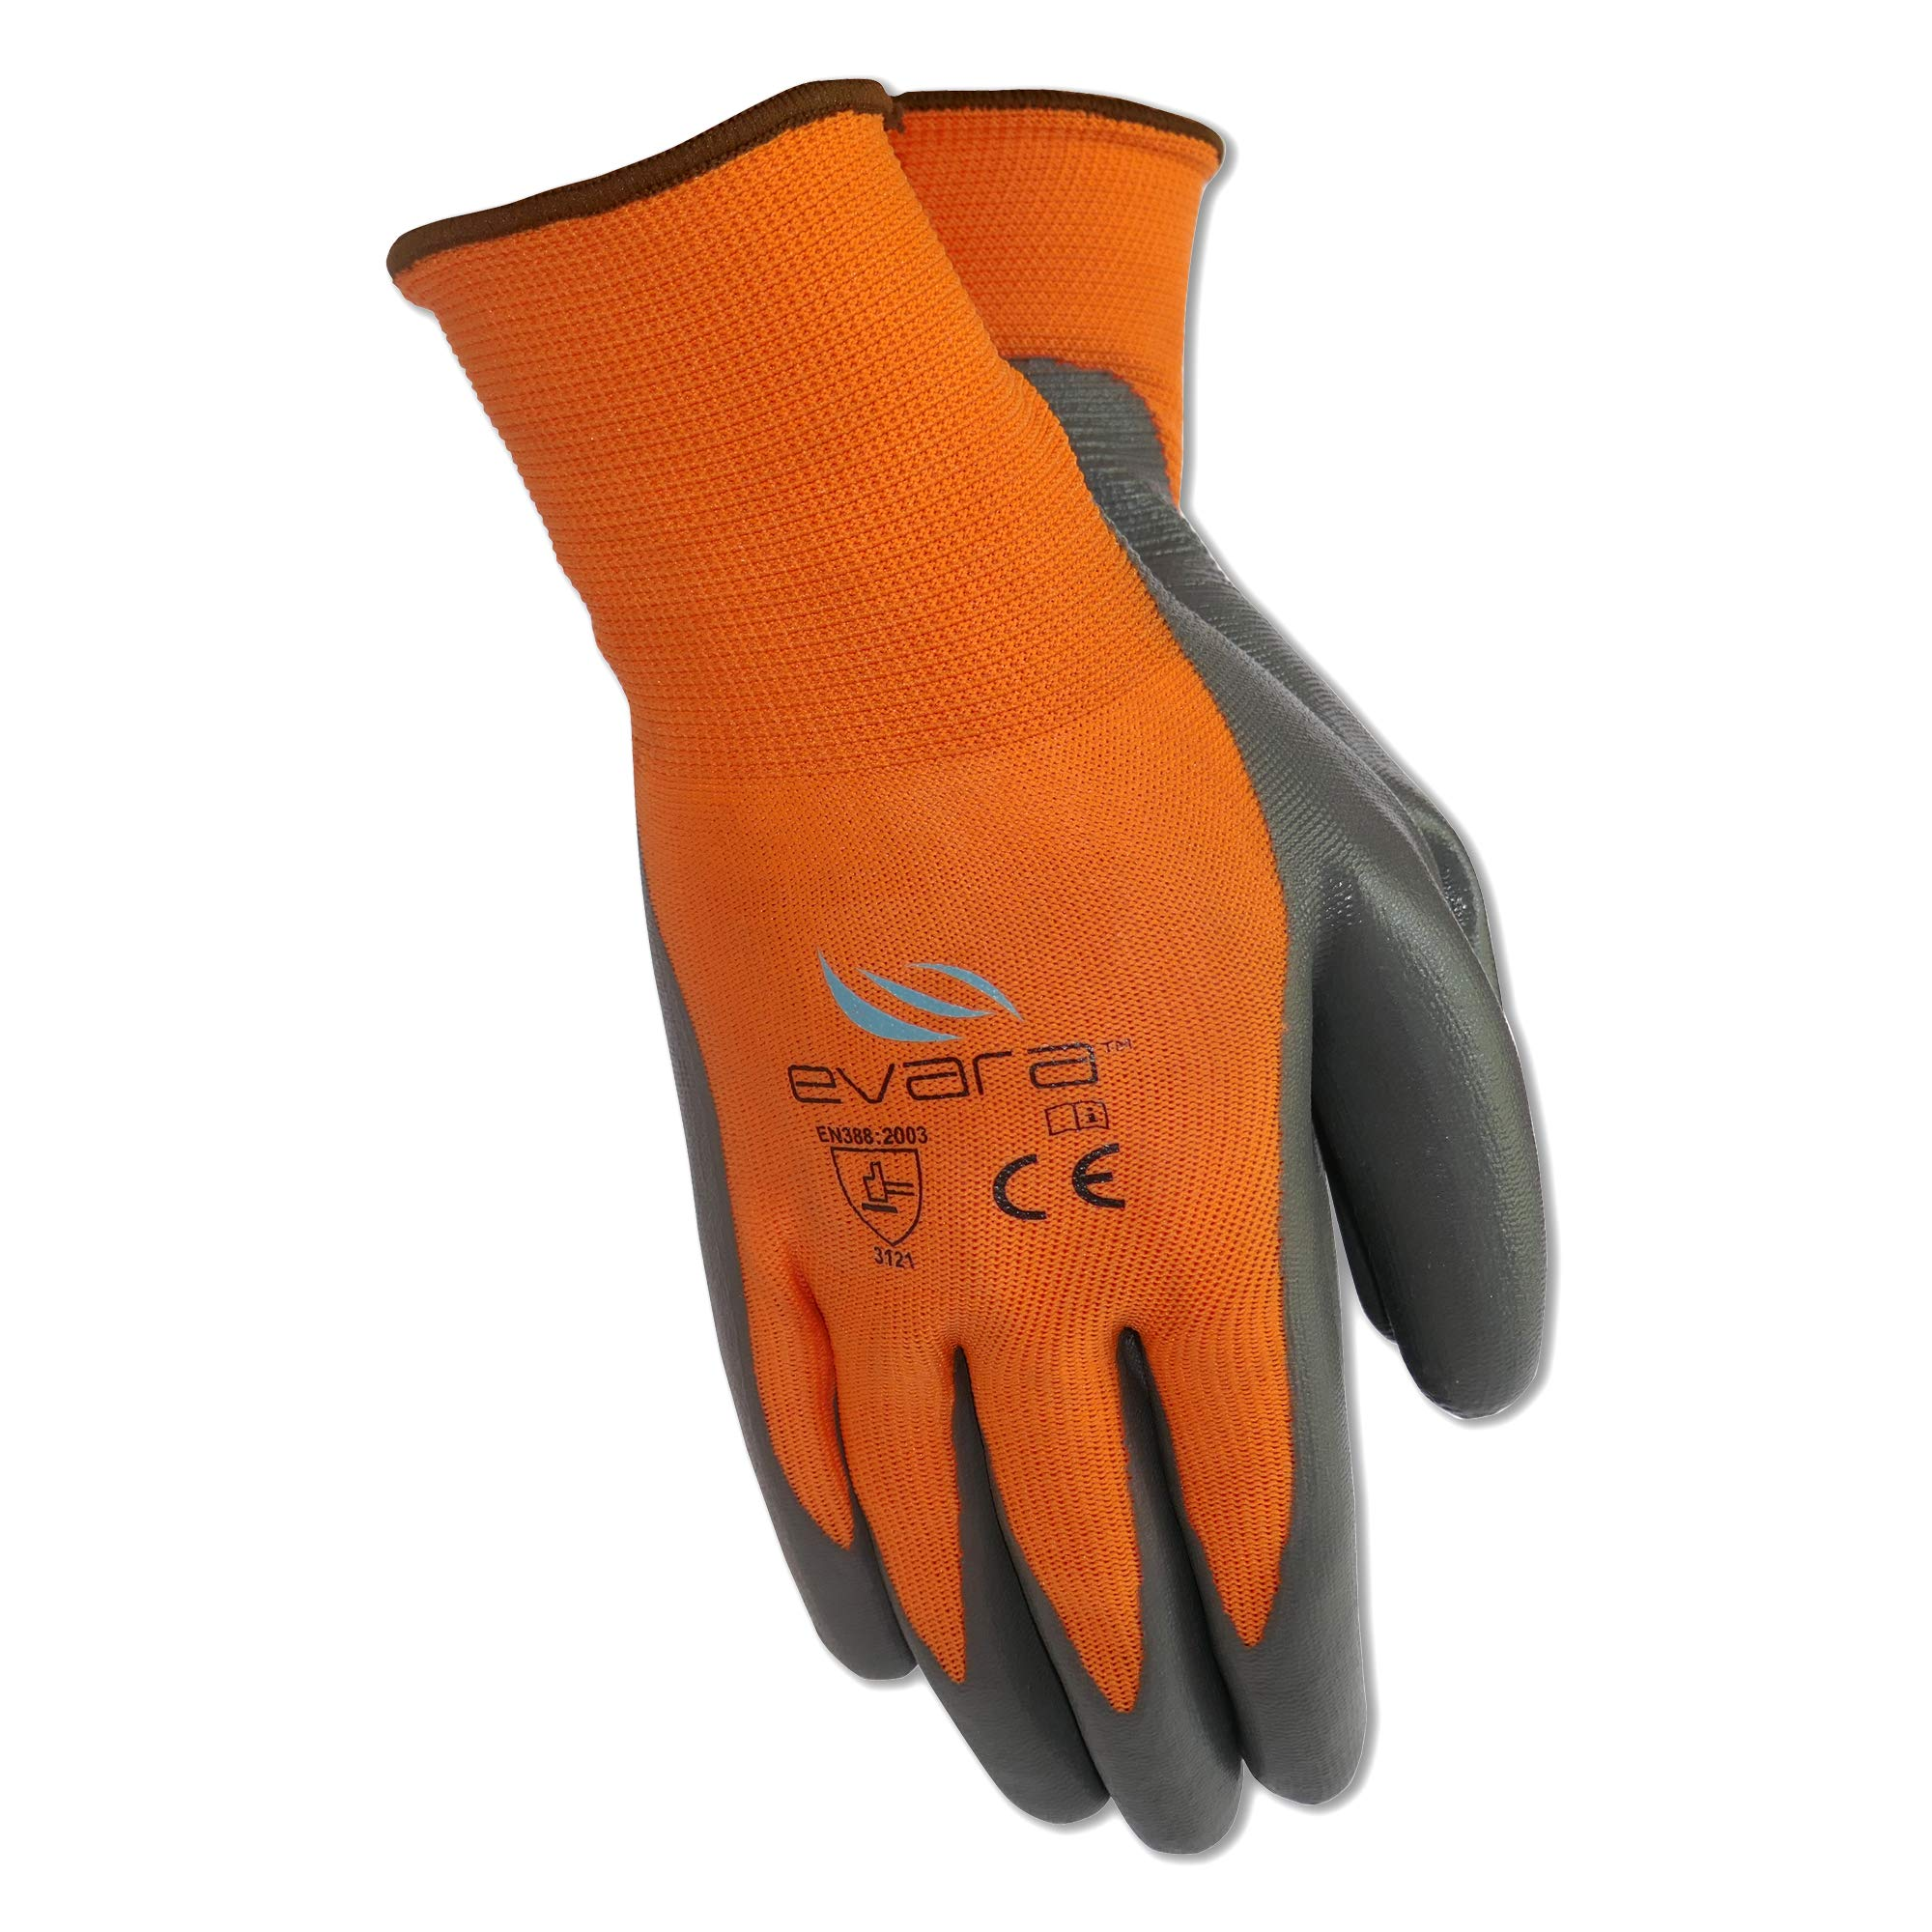 Tough Work and Gardening Gloves for Men and Women(12 pairs per pack) (Latex, Medium) Supreme Hi-vis orange with full thumb dipping by Evara